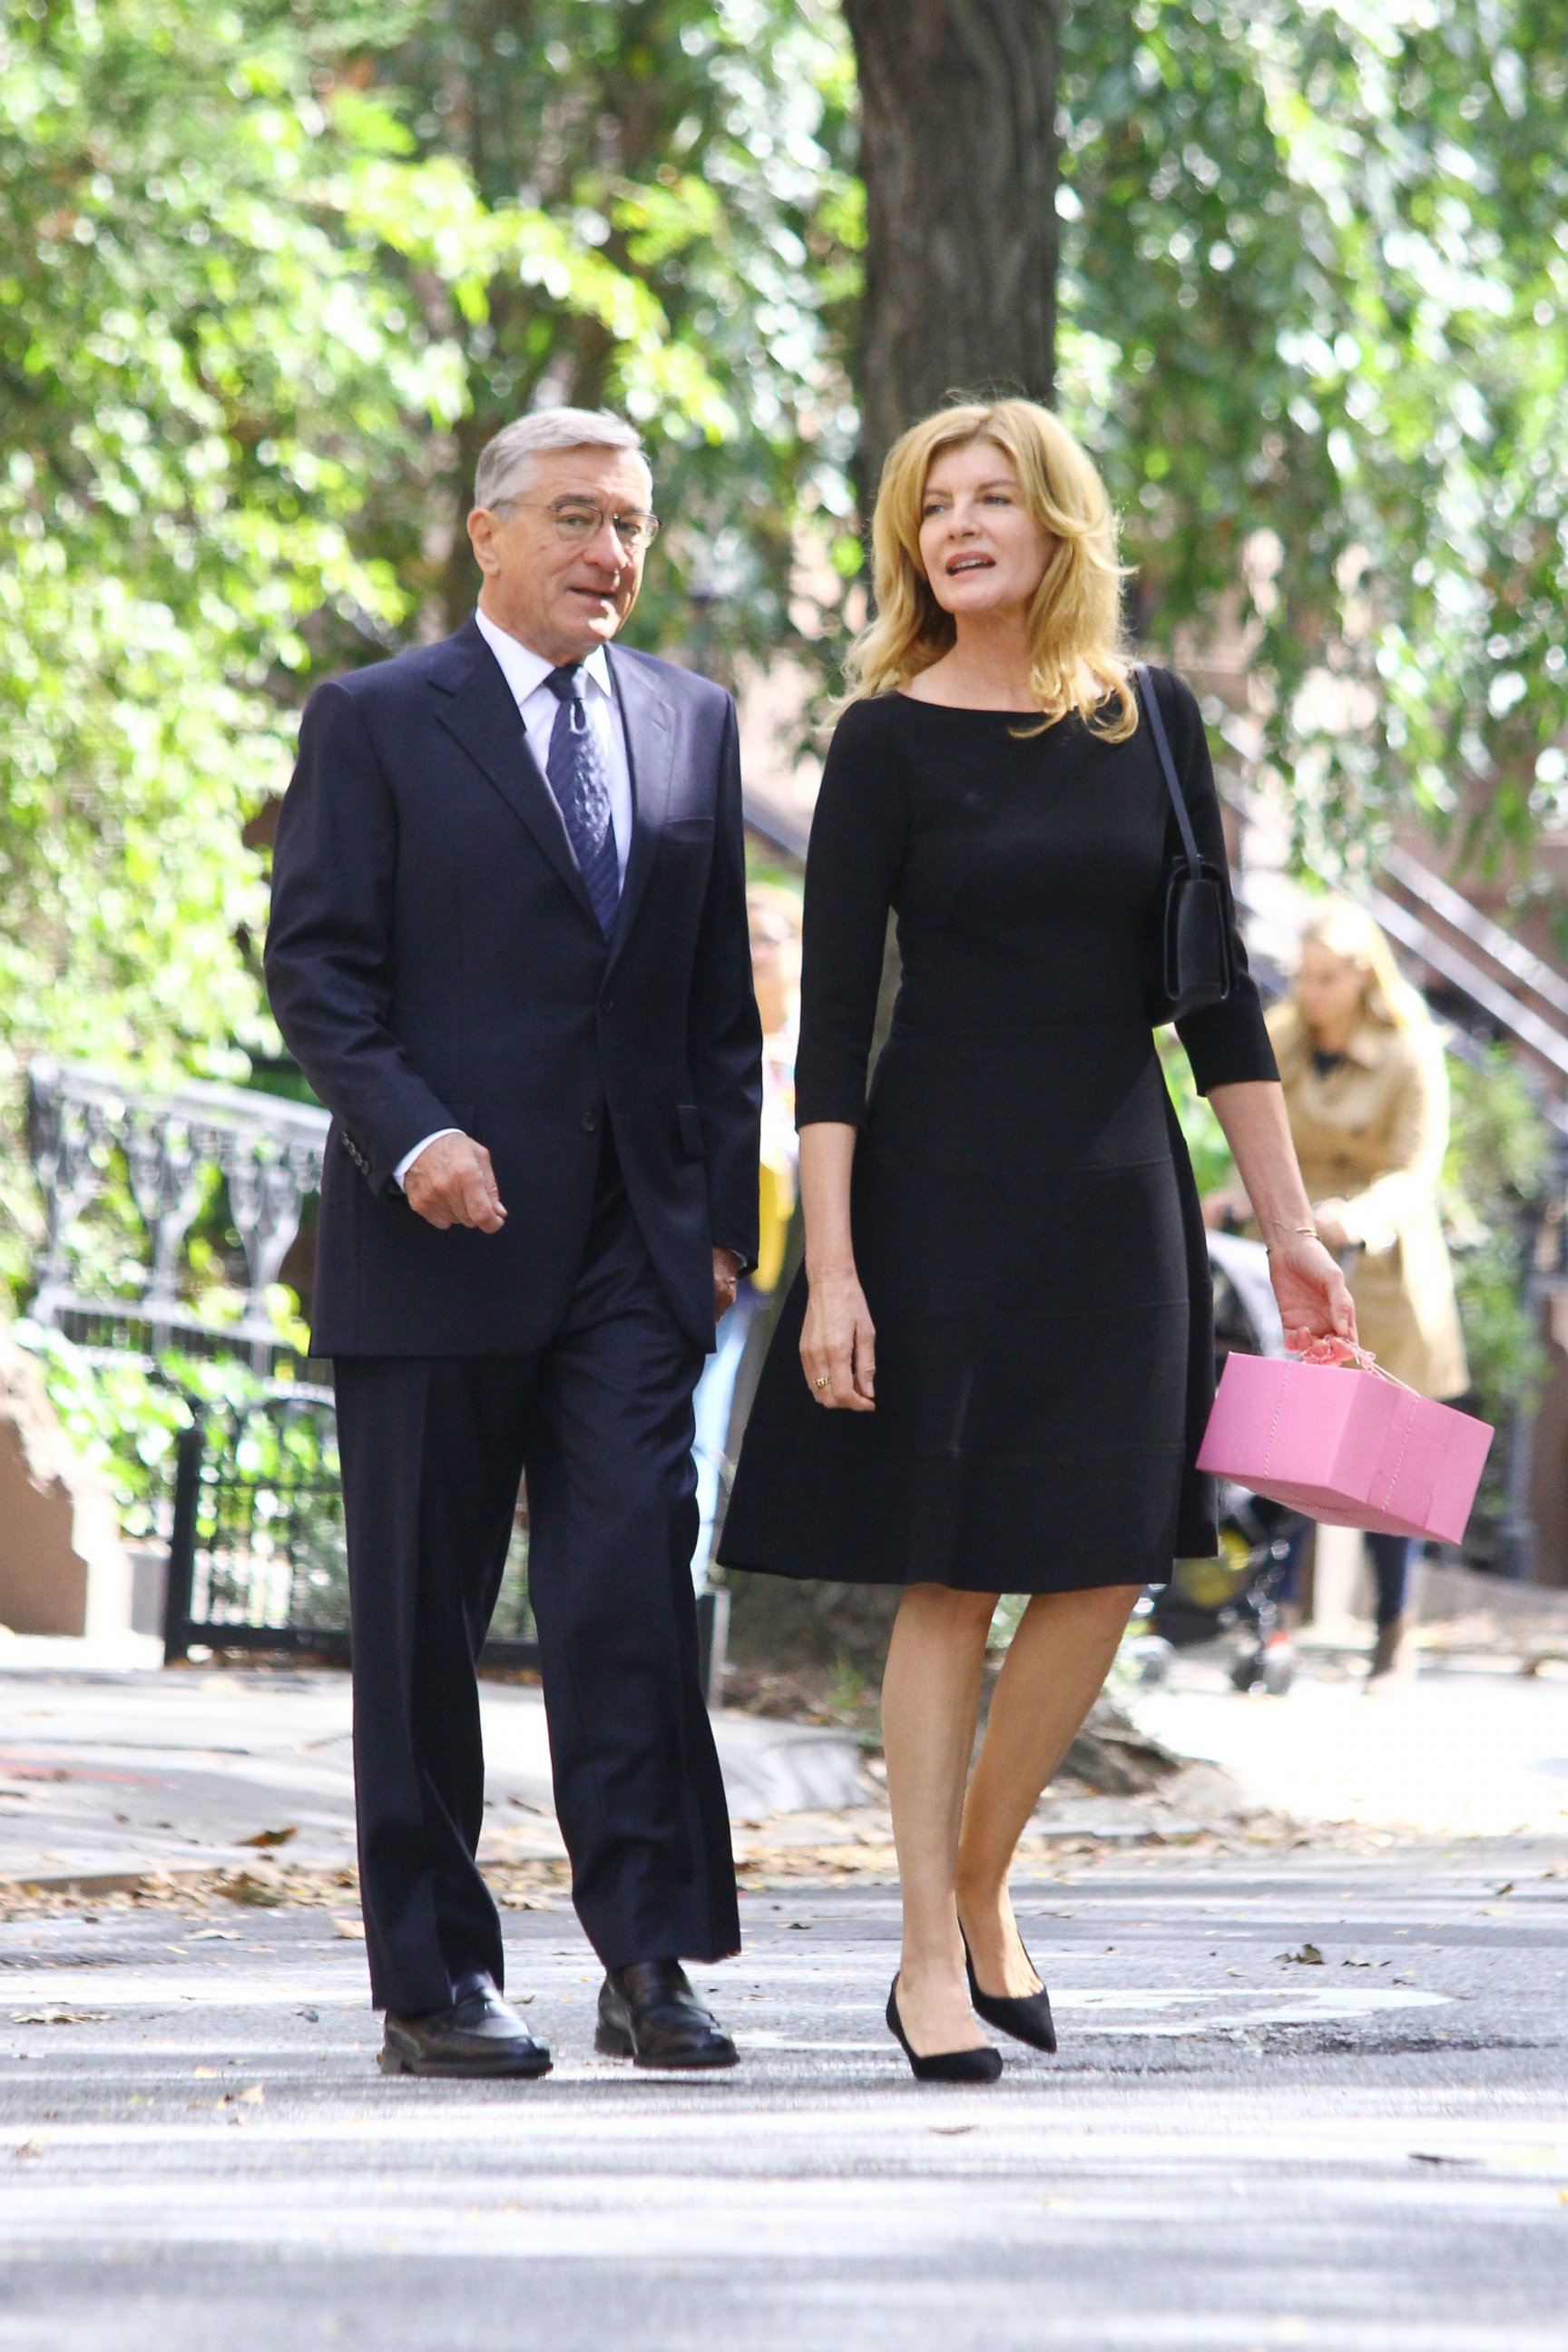 Renee Russo and Robert DeNiro Shoot a New Movie